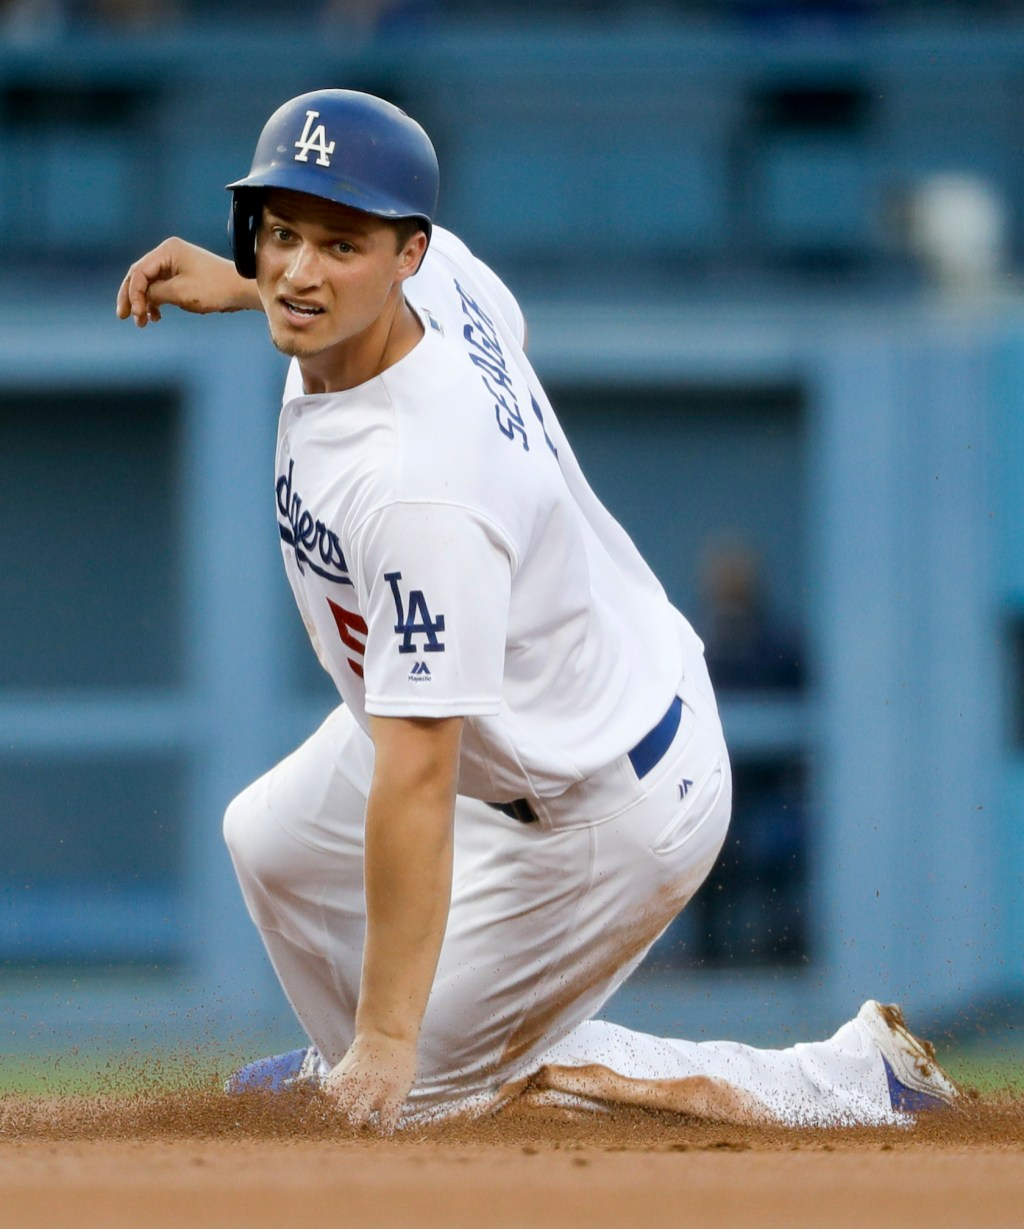 Dodgers Corey Seager daytoday with hamstring strain